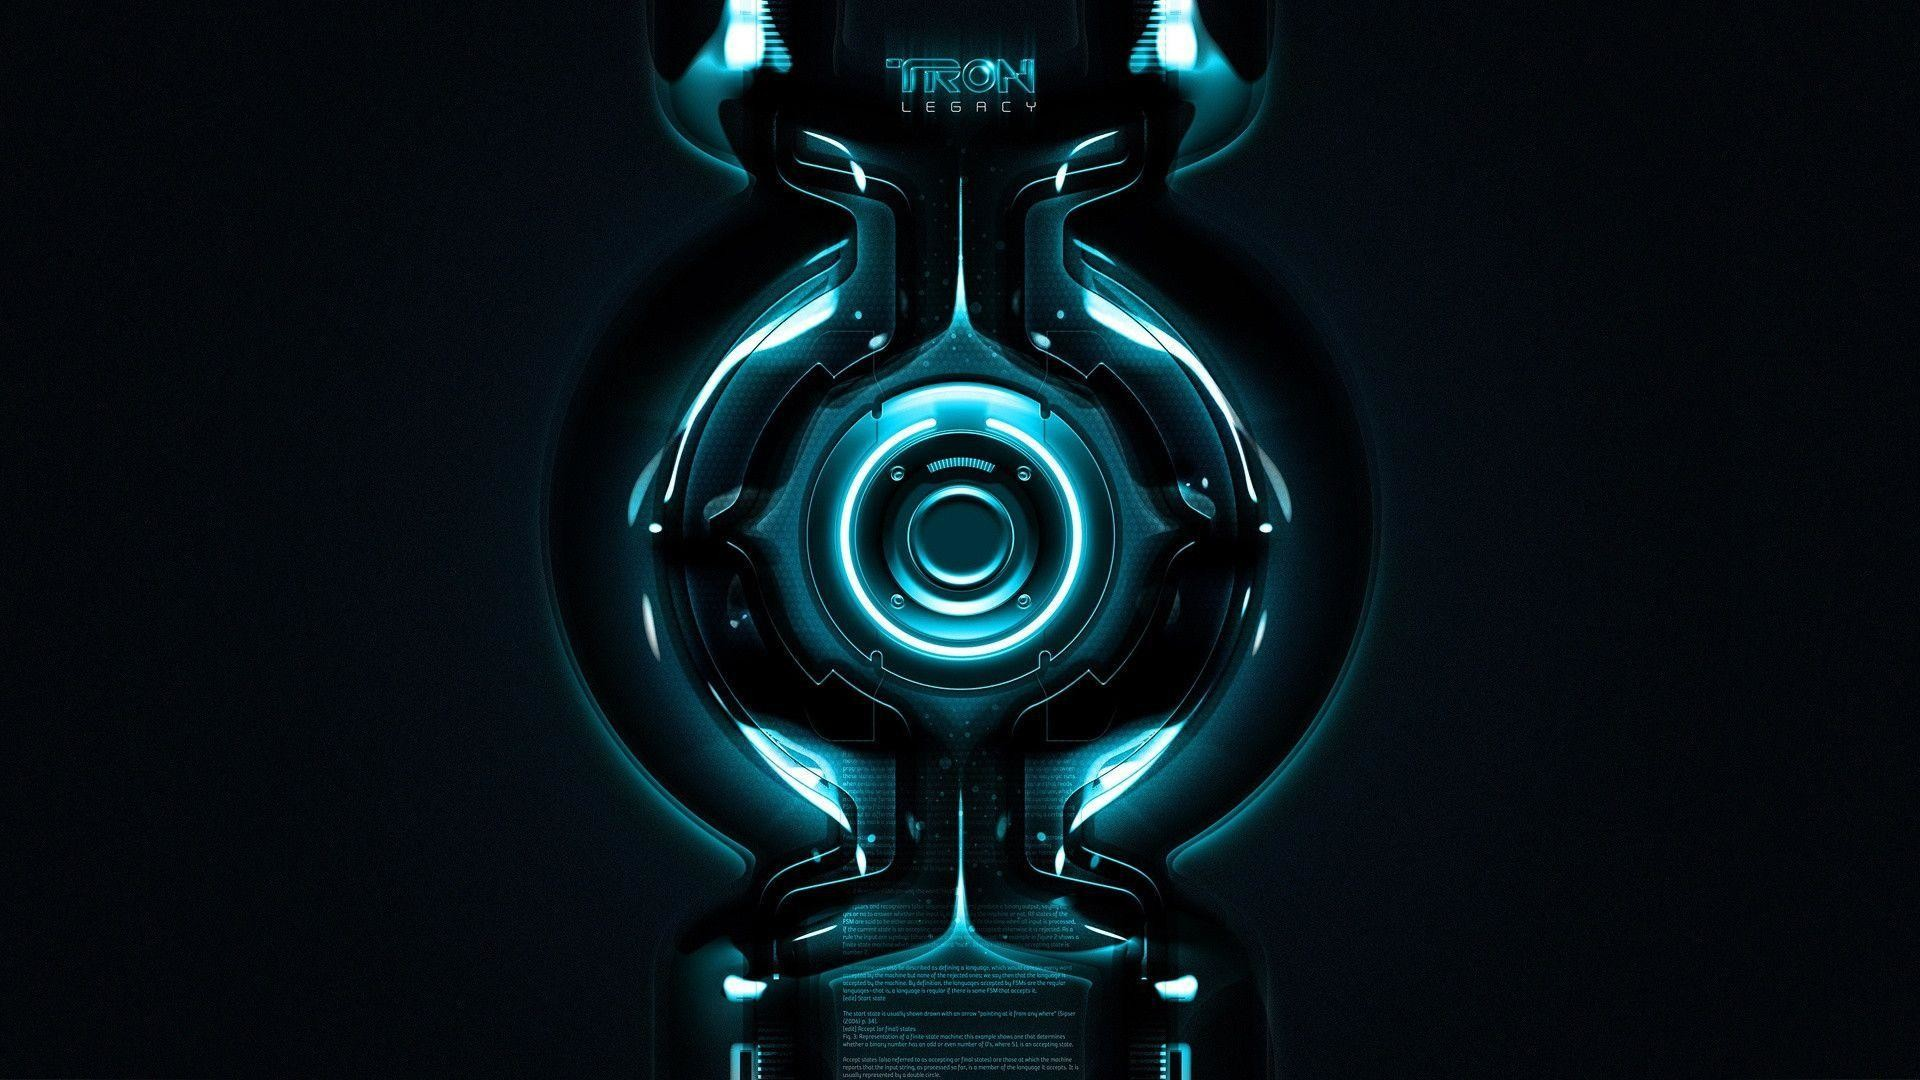 Tron Backgrounds – Wallpaper Cave